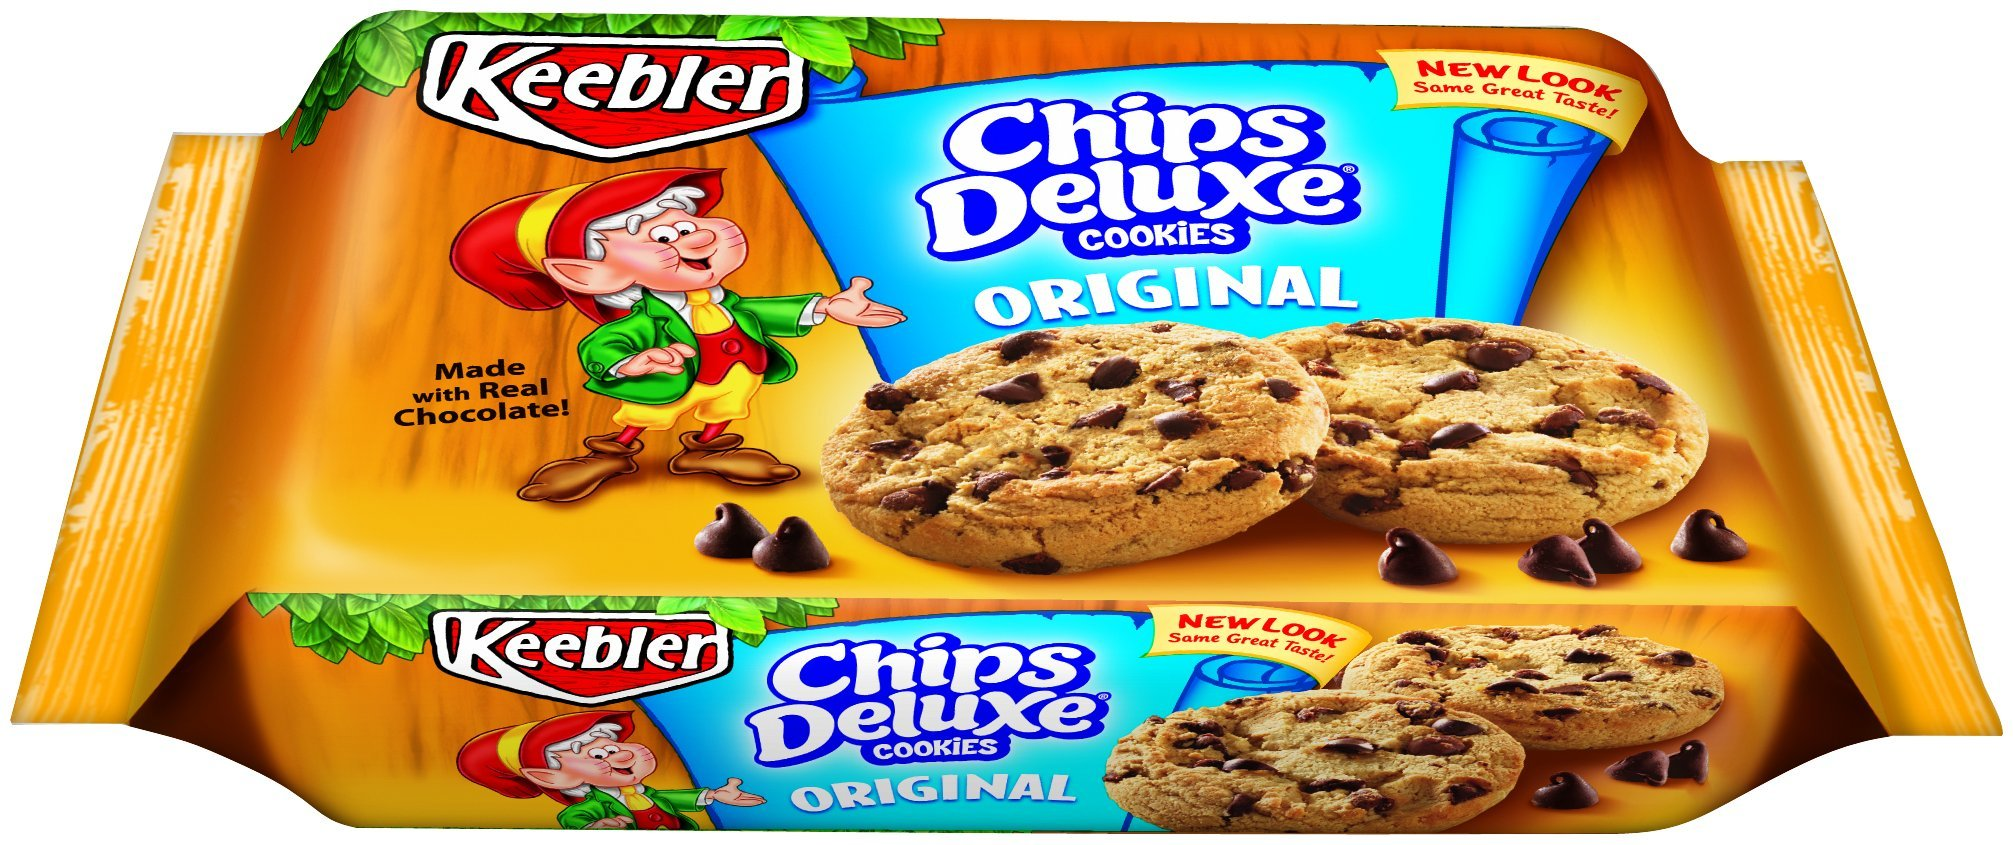 Keebler Original Chips Deluxe Cookies, 14.5 Ounce (Pack of 4) by Keebler